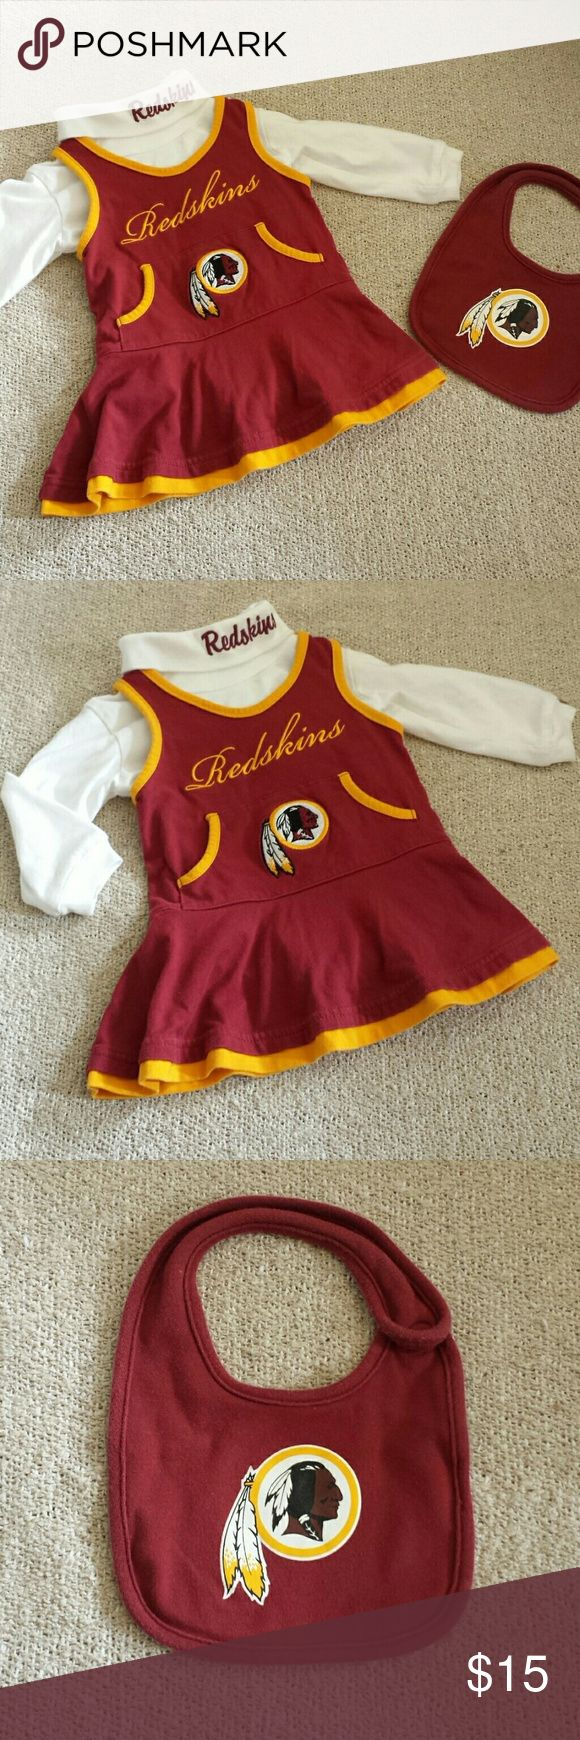 Adorable Redskins Baby Cheerleader Outfit, 12mos Excellent condition NFL Team Apparel Redskins Baby Cheerleader outfit with matching bib. Size 12 months. From smoke free & pet free home. NFL Team Apparel  Dresses Casual